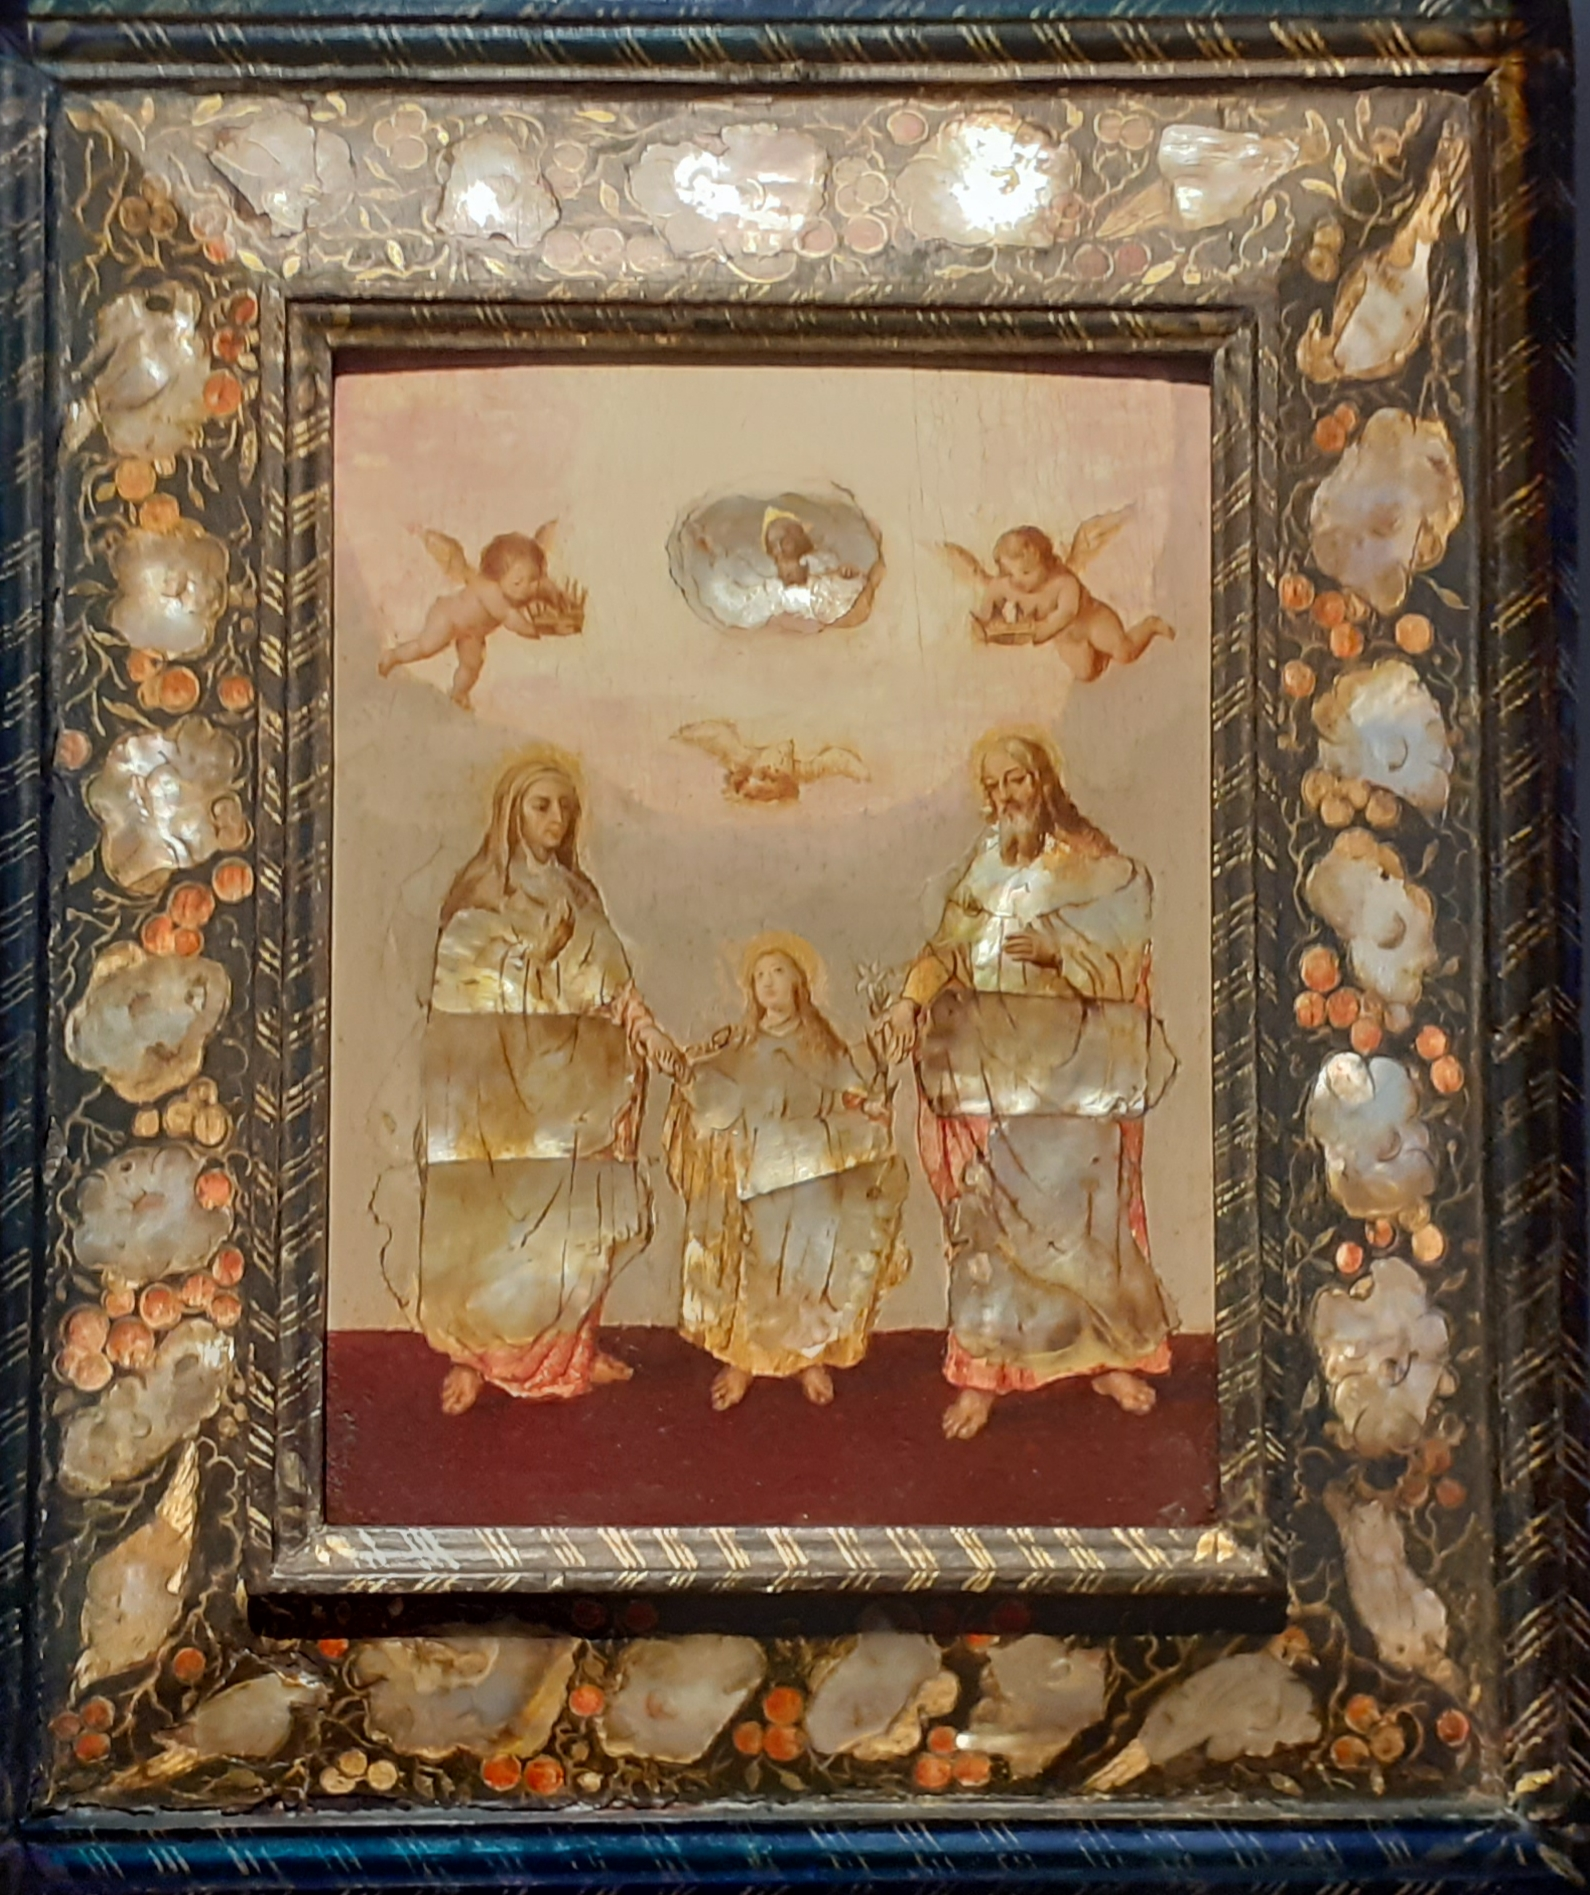 A private hosted viewing of Viceregal Latin American Treasures at Colanghi Gallery and drinks at Maison Francois, St James